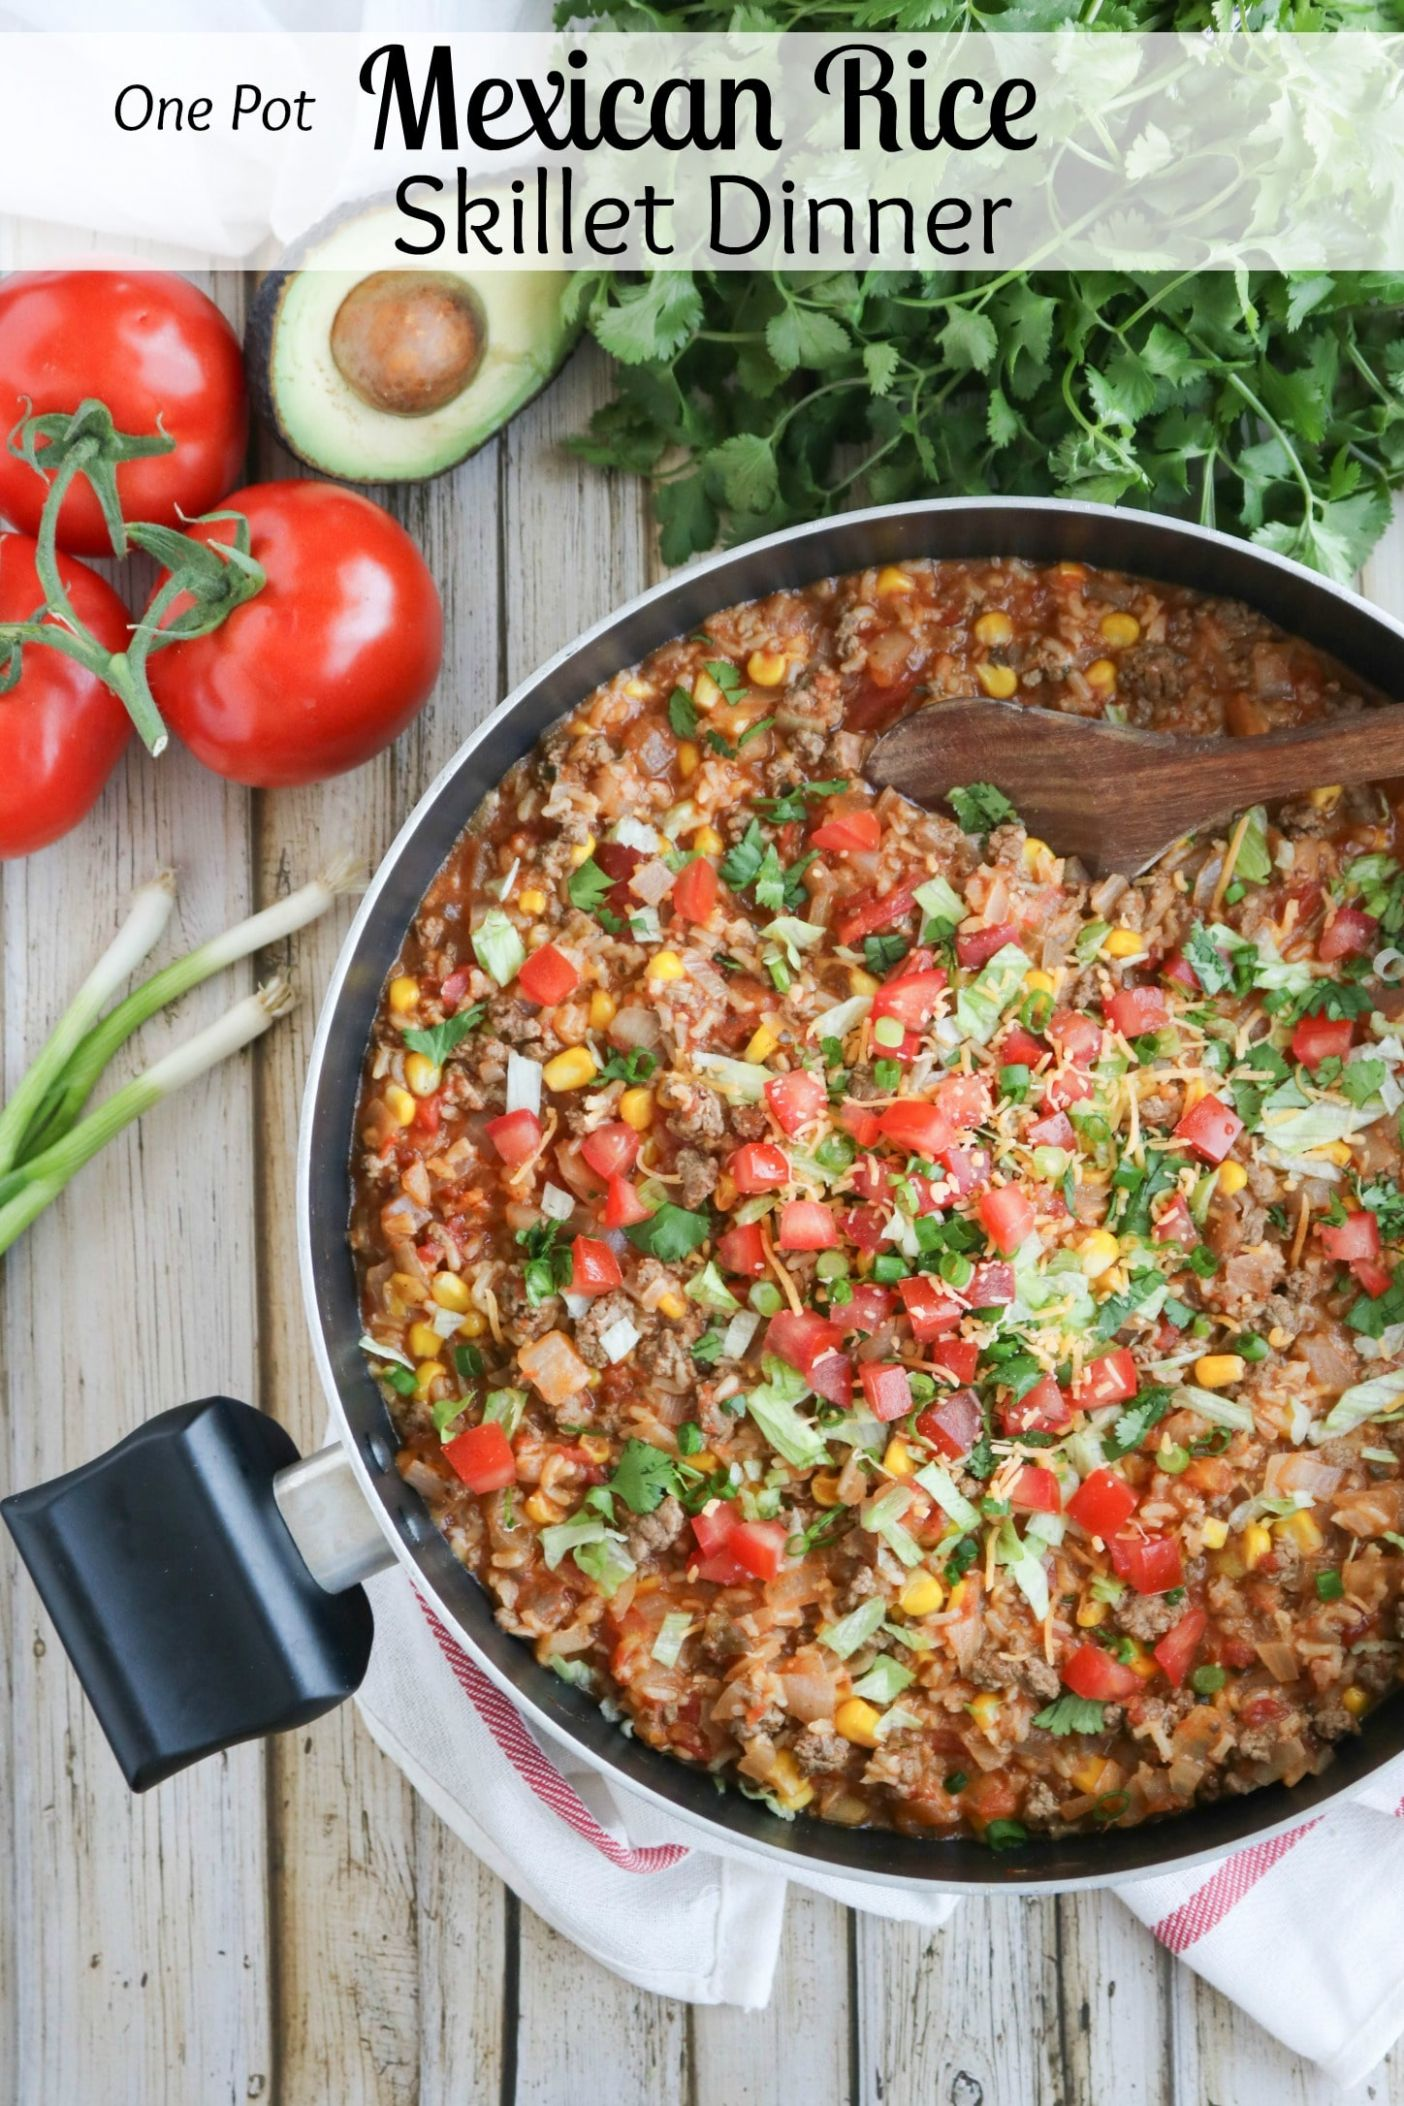 One-Pot Mexican Rice Skillet Dinner - Dinner Recipes One Pot